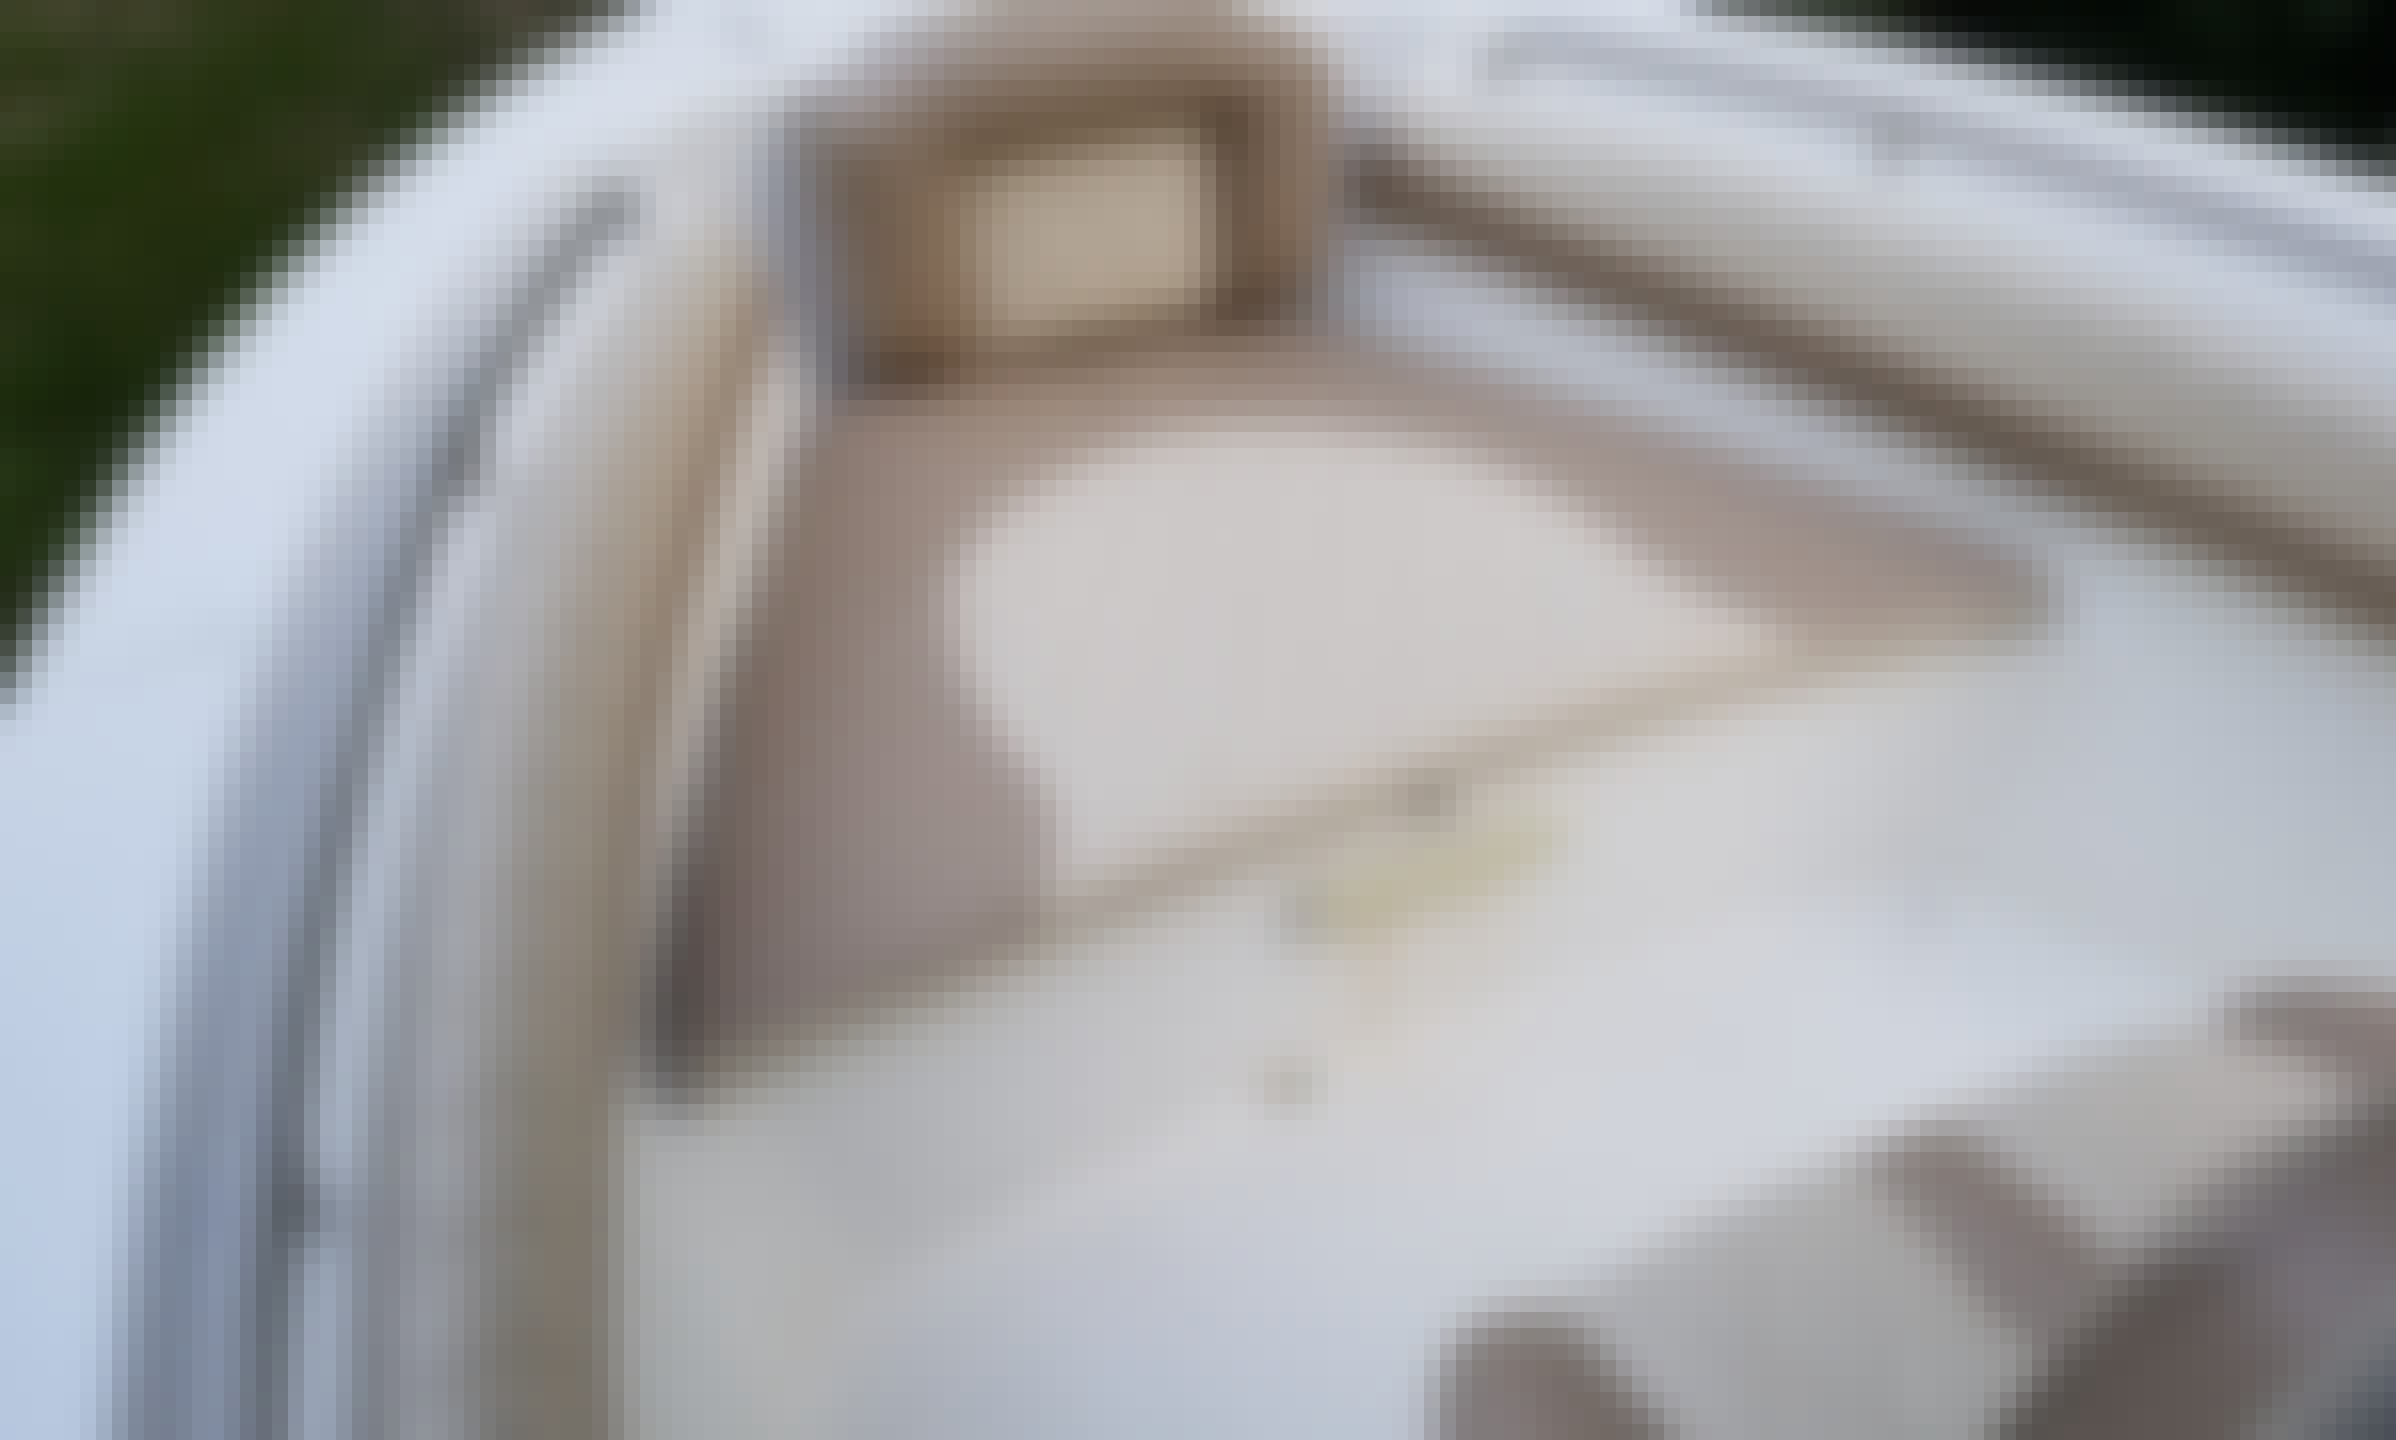 Amazing Nautic Star 2000 Center Console for Rent in Houston, Texas